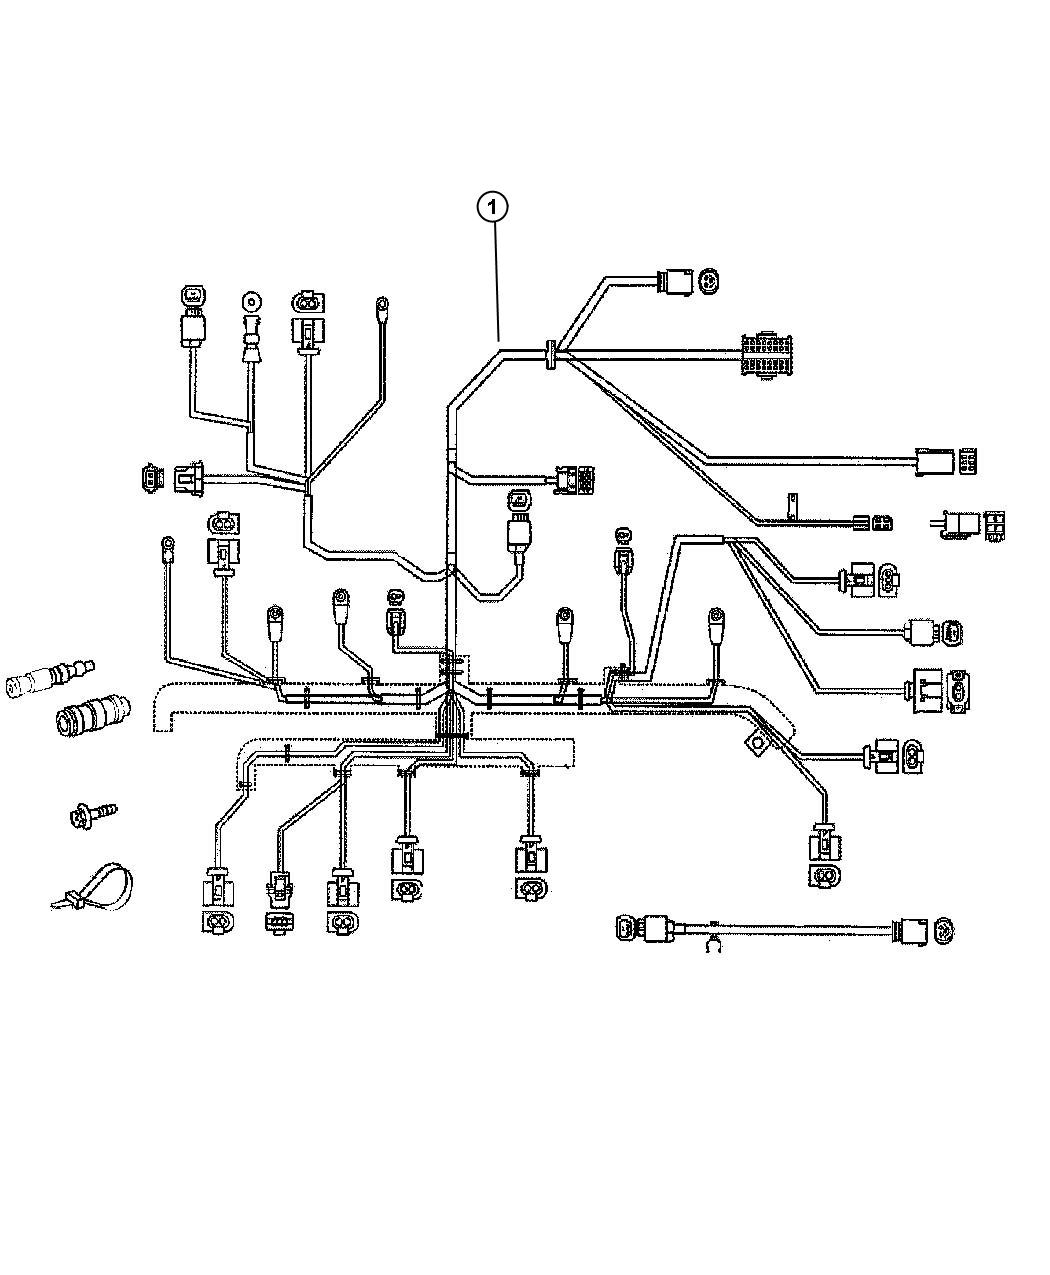 2010 Jeep Patriot Wiring  Engine  Tag  Related  Mopar